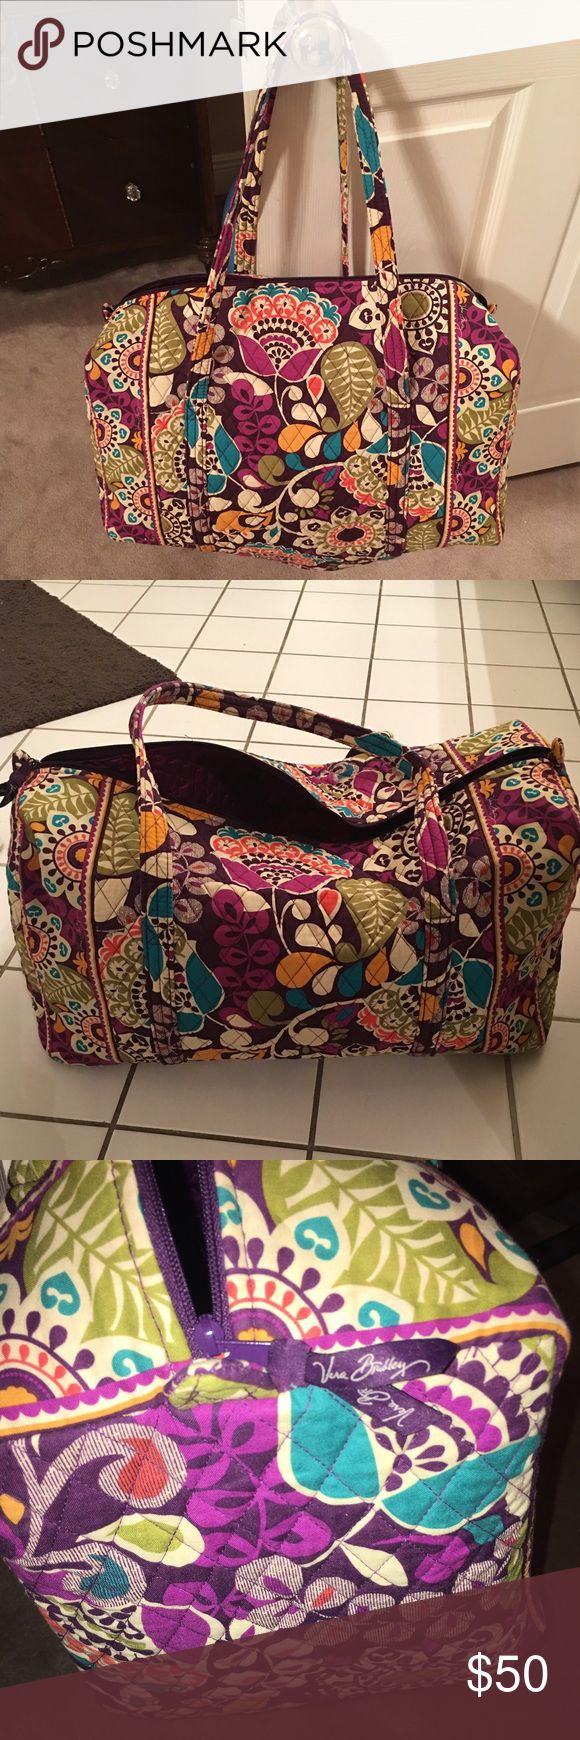 Vera Bradley Large Duffel in Plum Crazy Vera Bradley Large Duffel in Plum Crazy, used twice, great condition! Feel free to ask any questions you may have and please make offers through the offer button ;) Vera Bradley Bags Travel Bags